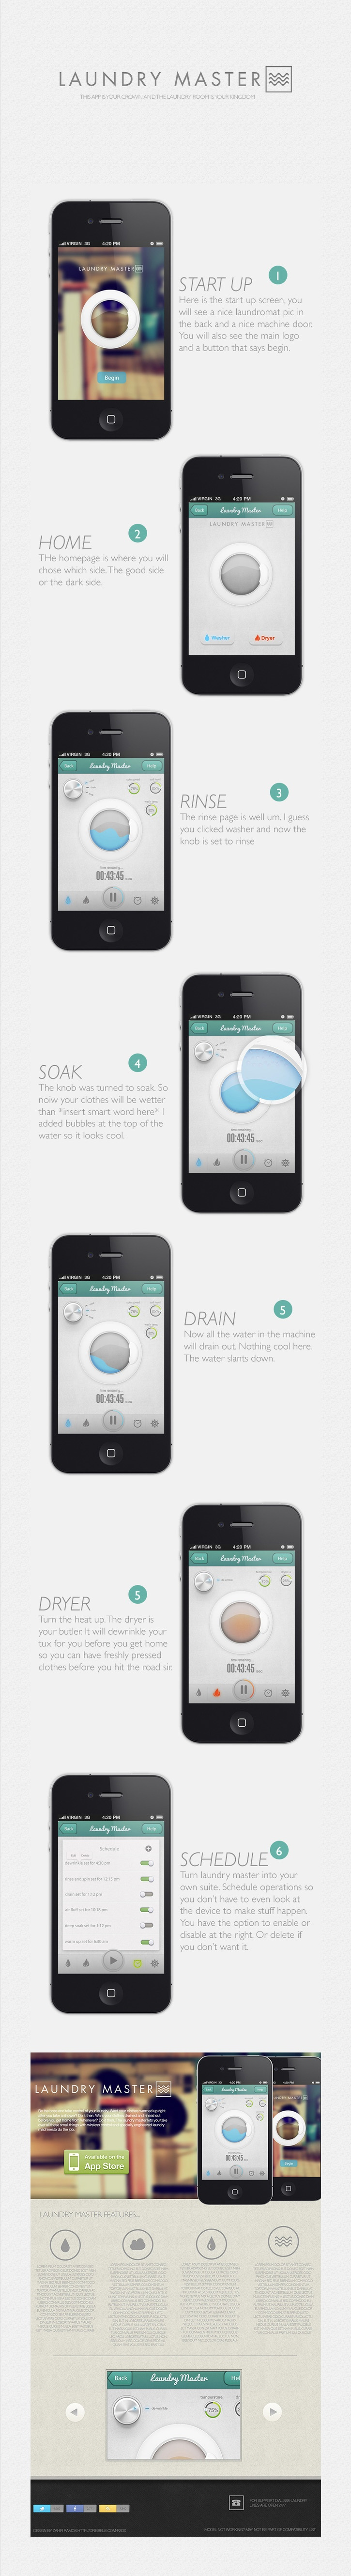 Laundry Master App - iOS  ***  This is an app concept I developed. I drew up a design scheme. This project may or may not be done. I am thinking of forming a team of engineers and devs to do this.  ***   by Zahir Ramos, via Behance